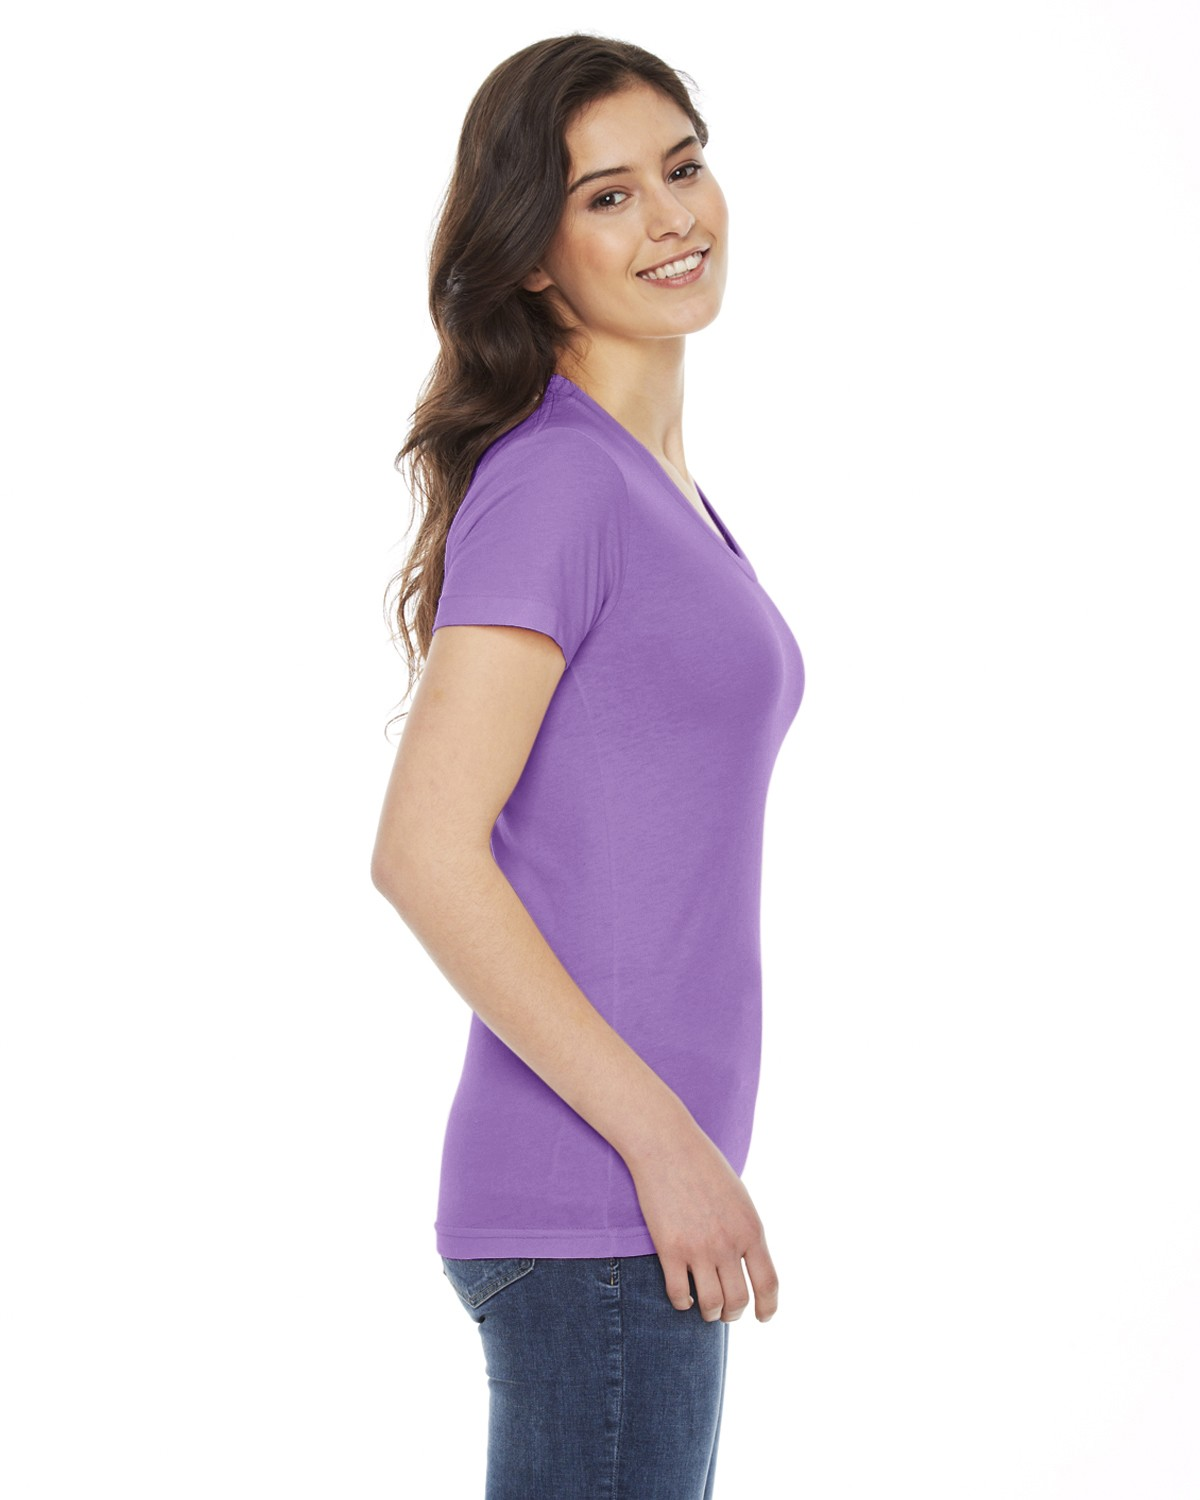 BB301W American Apparel ORCHID